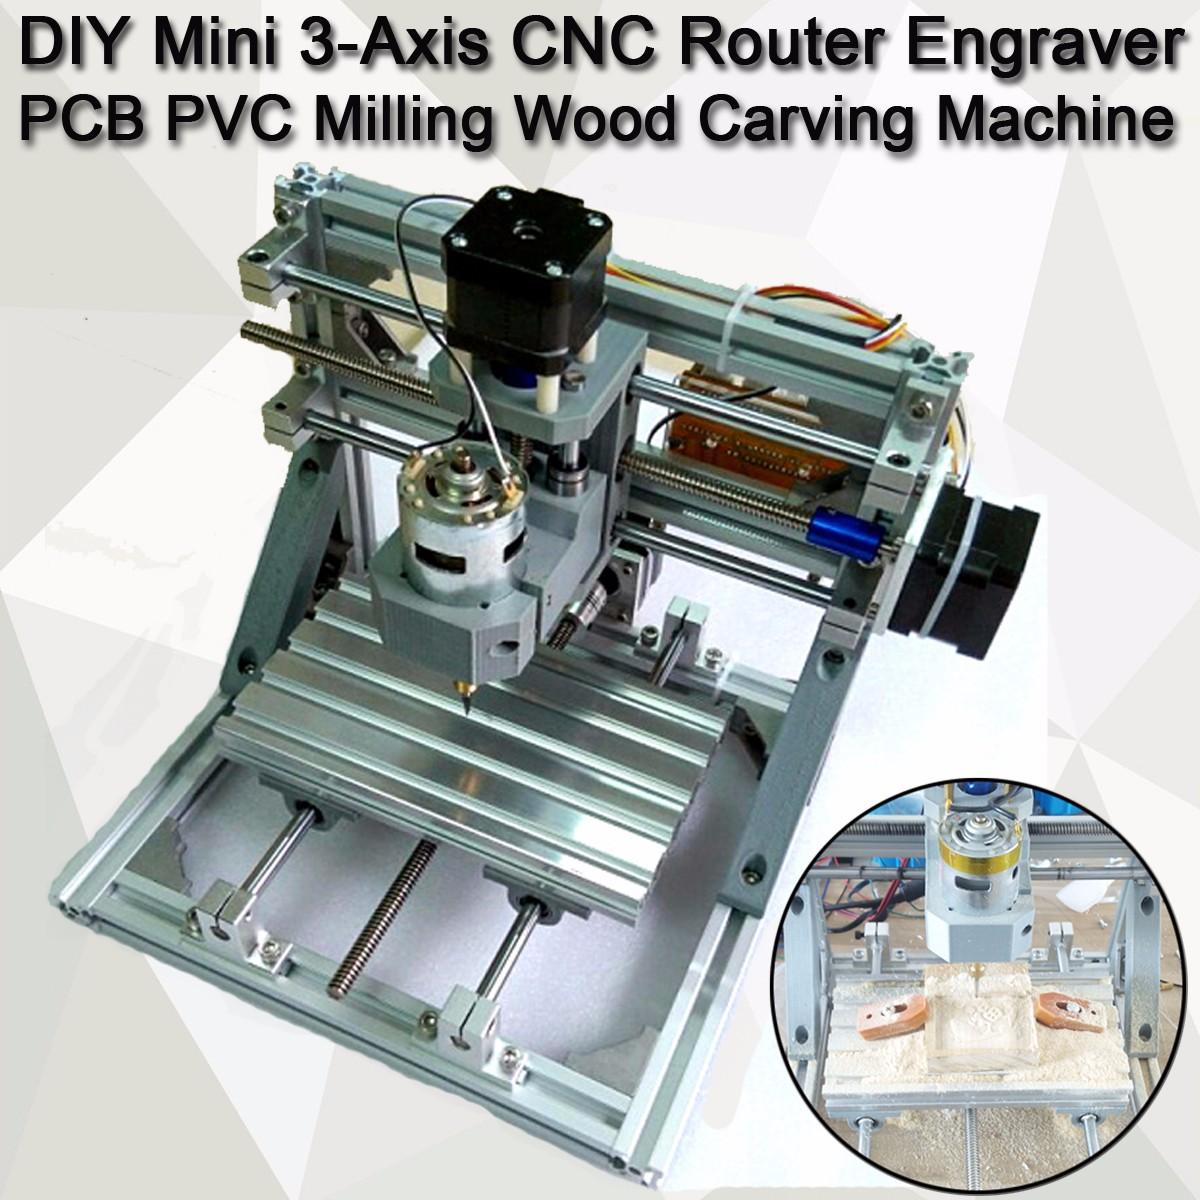 DIY Mini 3 Axis Router CNC 1610 GRBL Control CNC Machine Engraver PCB PVC Milling Wood Carving Machine working area 16x10.5x3cm 2020v diy cnc router kit mini milling machine 3 axis brass pcb cnc wood acrylic carving engraving router pvc pyrography